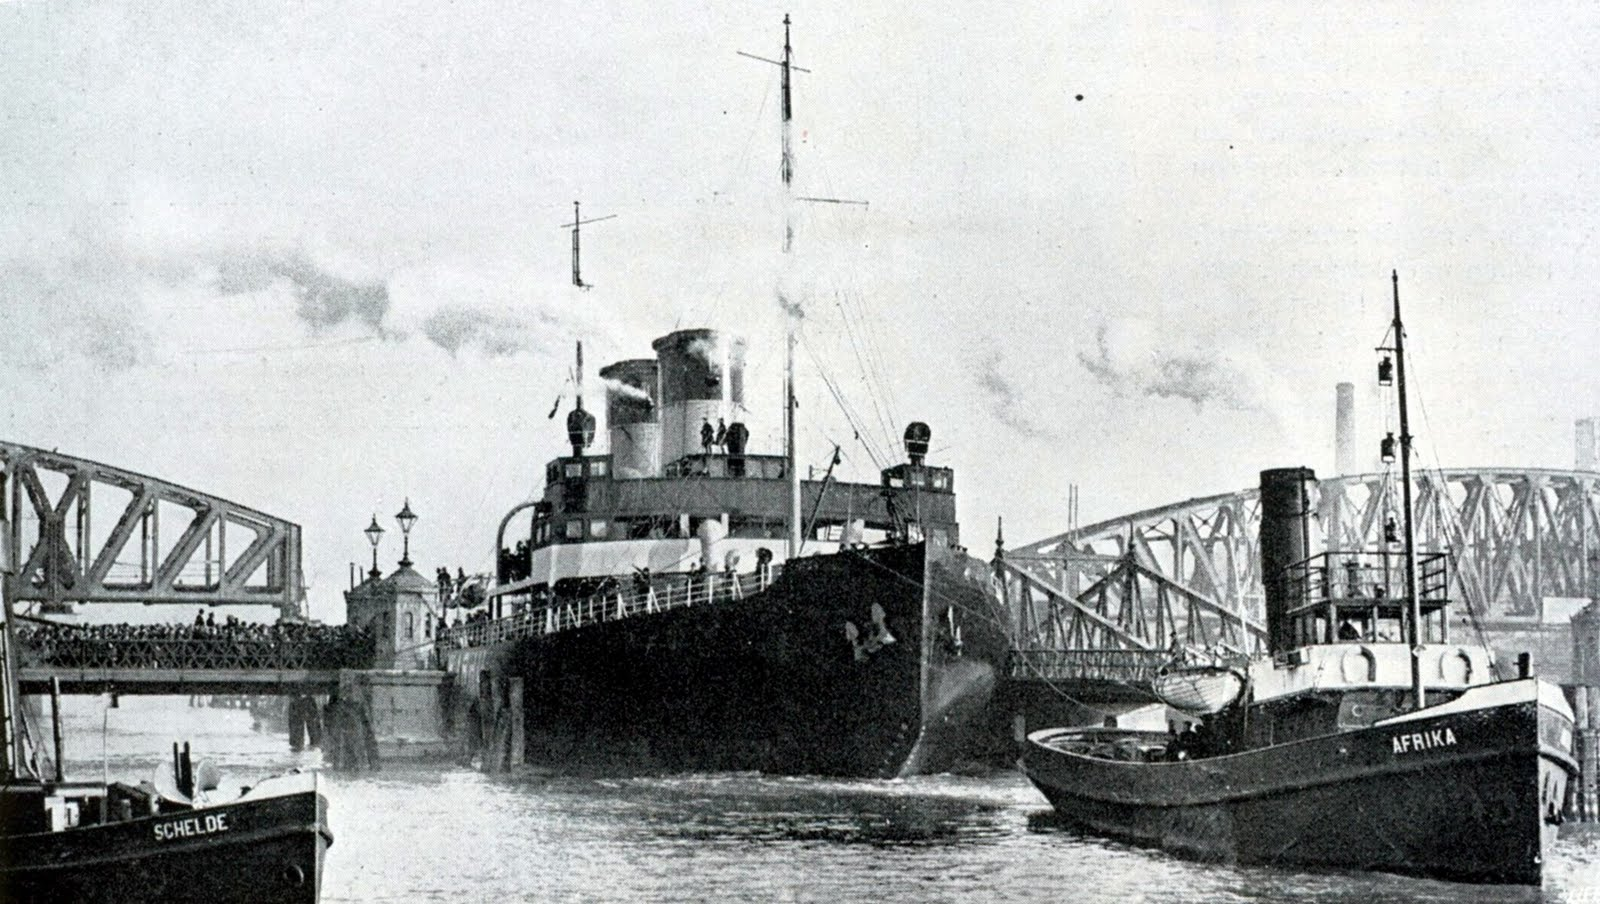 WARSHIPSRESEARCH: The Building Of The Finnish Icebreaker